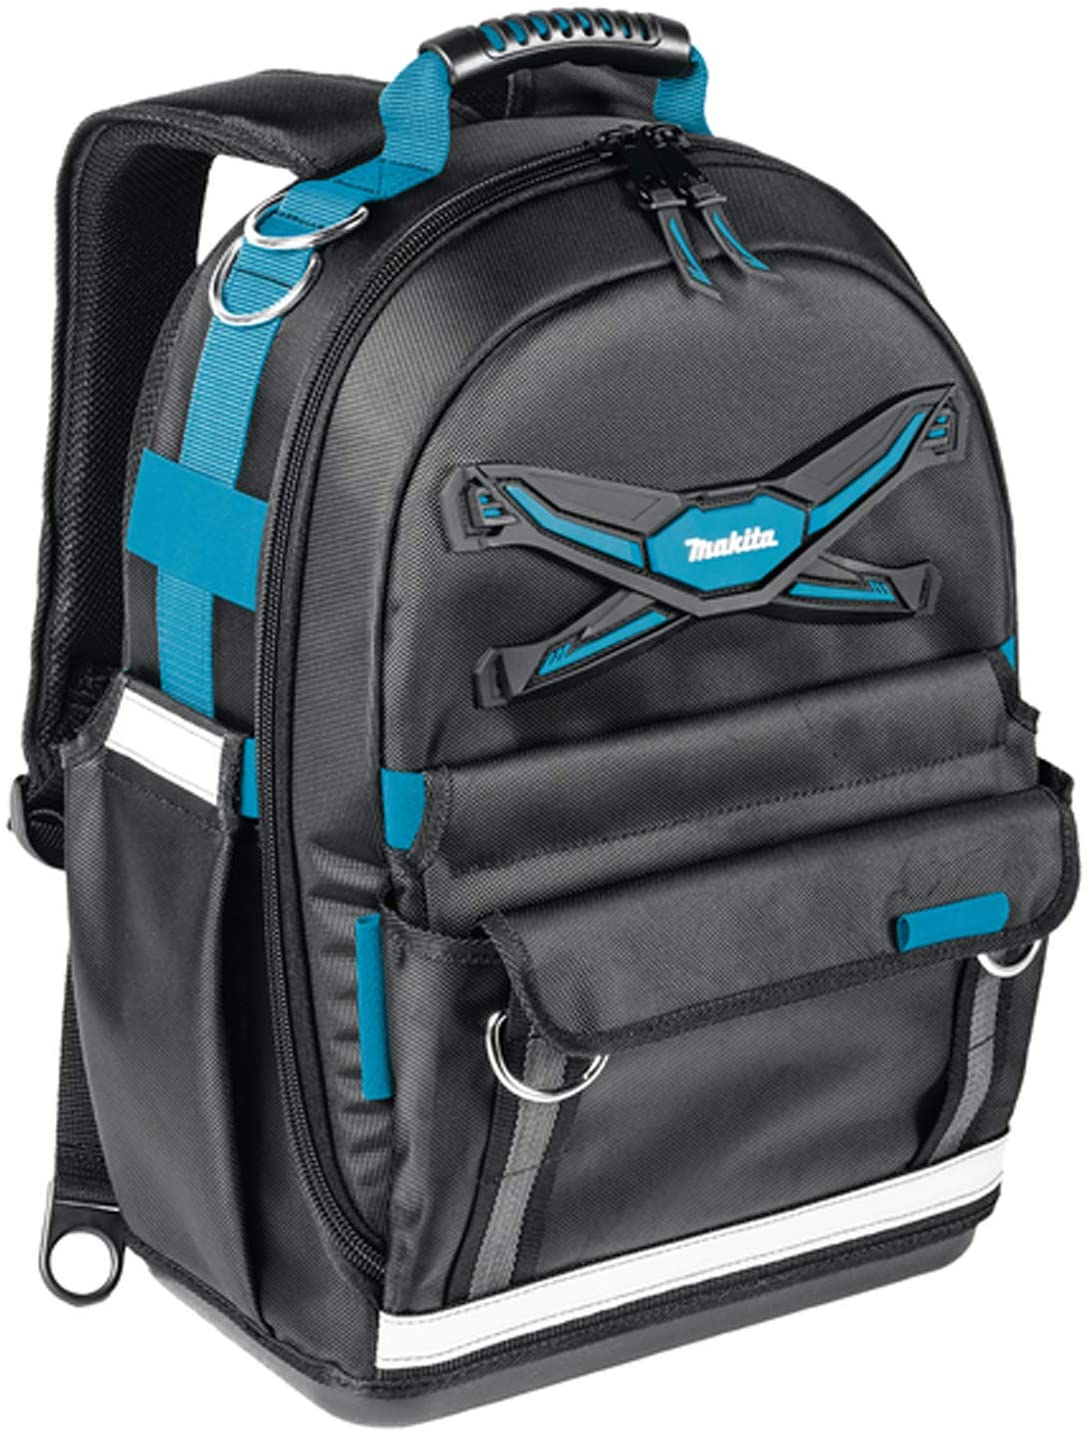 Makita TH3 Backpack Tool Organiser - E-05511